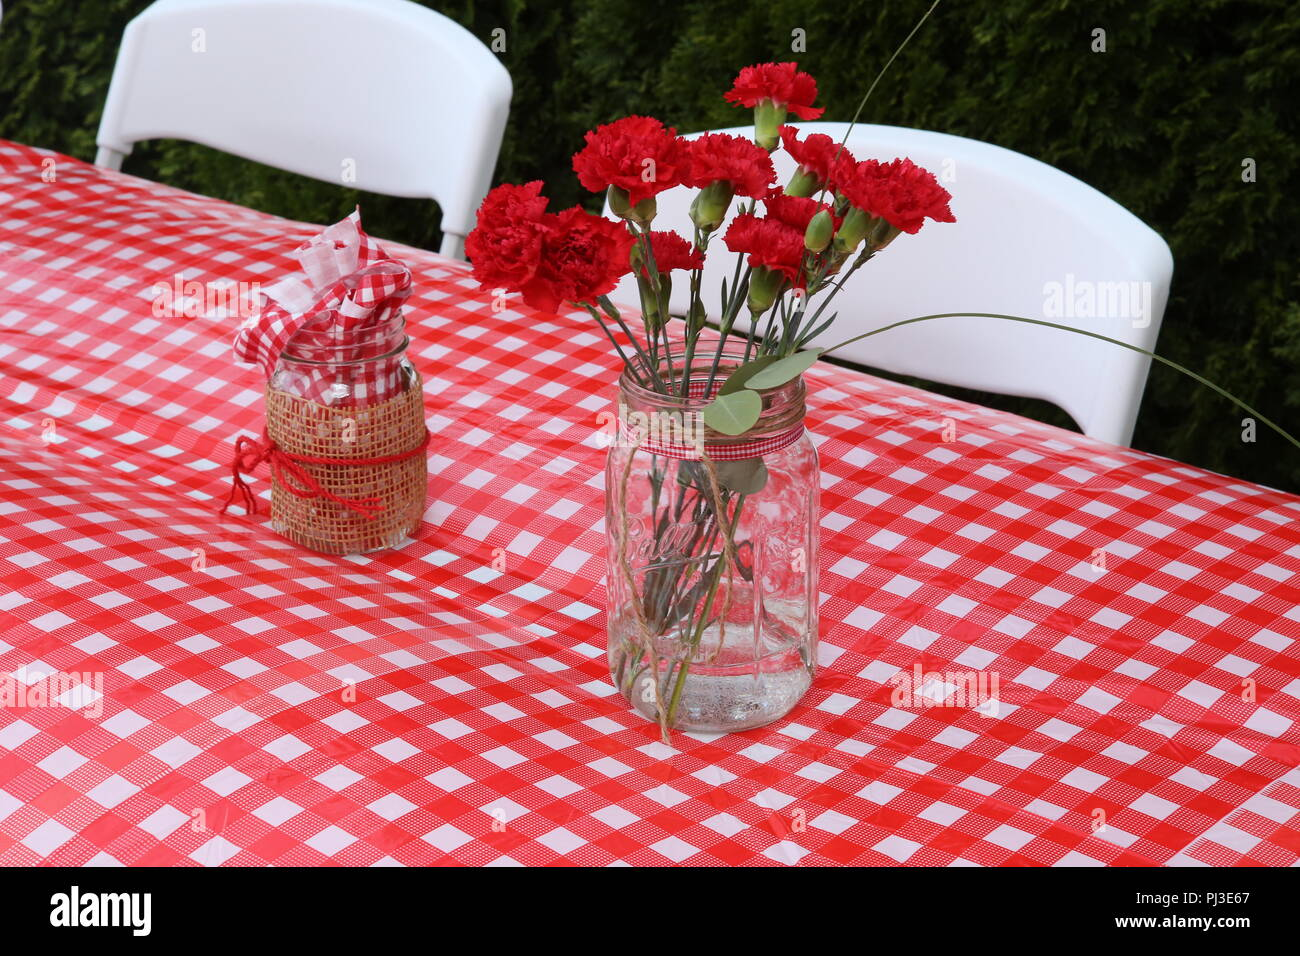 red flowers on red white tablecloth - Stock Image